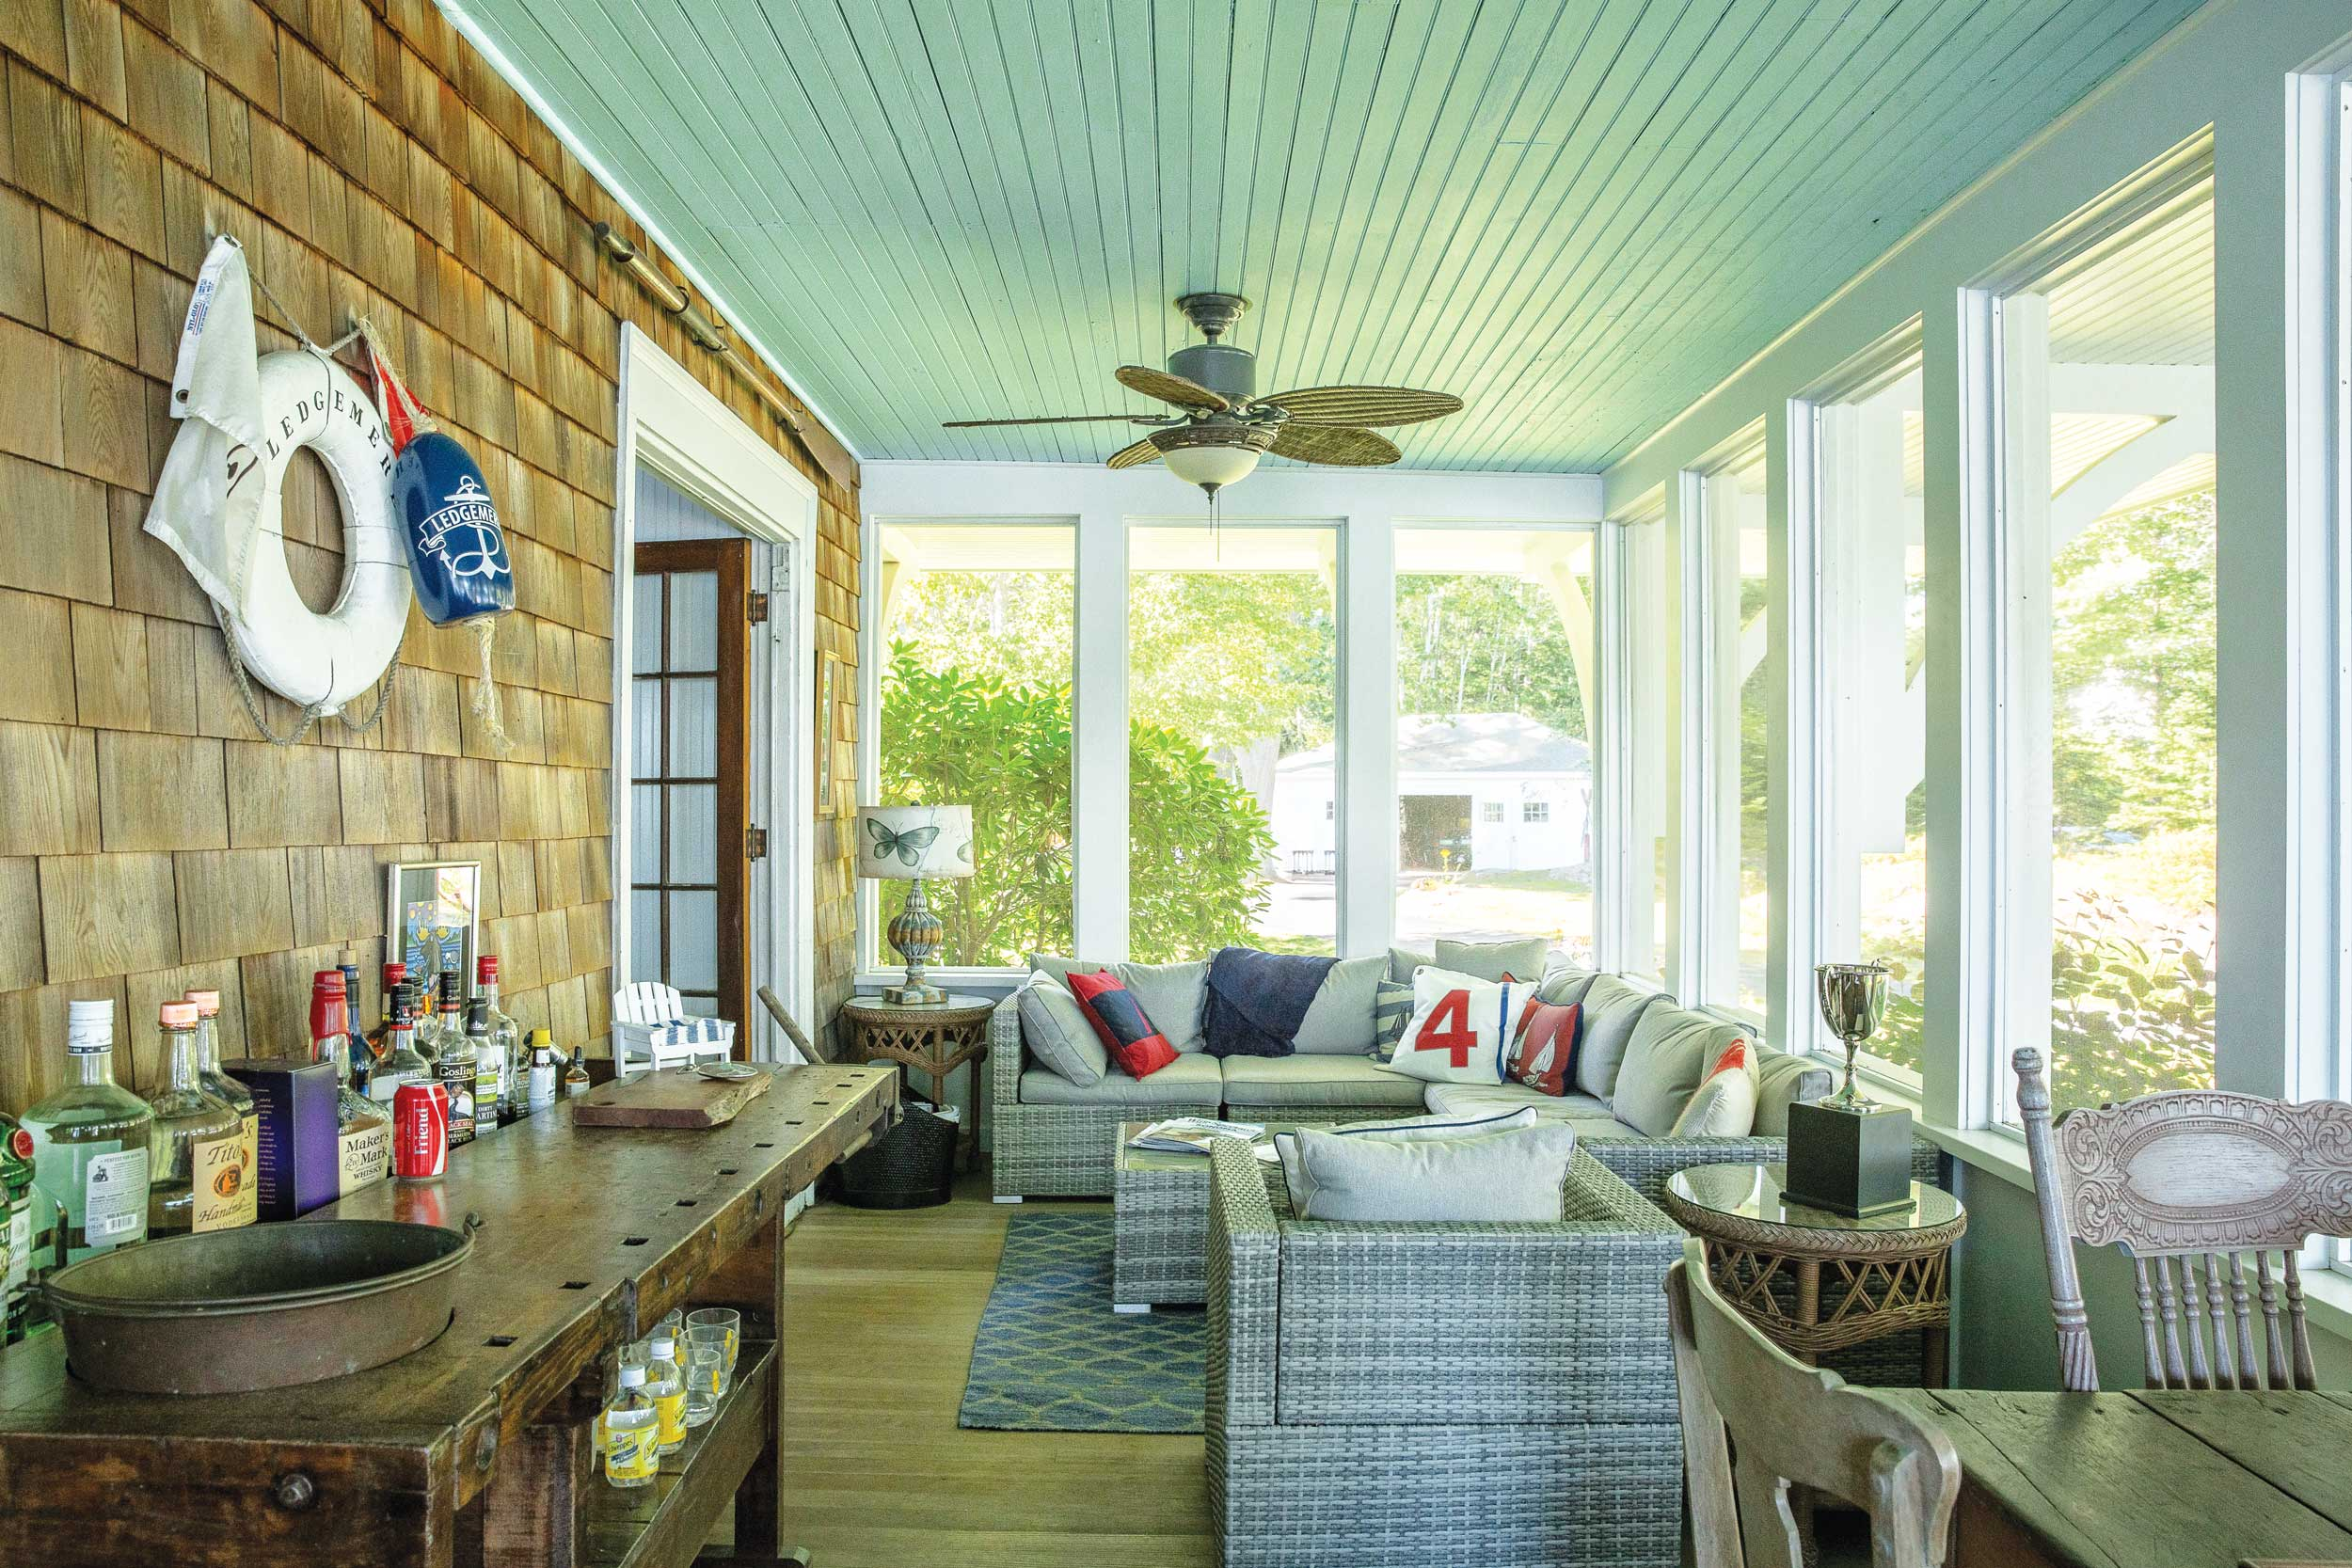 An enclosed porch with a yacht club lifesaver, bar area, game table, and blue ceiling, the latter a custom in South Carolina (where the tradition seems to have to do with warding off evil spirits) and in New England (where the custom may have to do with fooling insects into not building nests.) Other theories about why people paint porch ceilings blue? It resembles the sky.